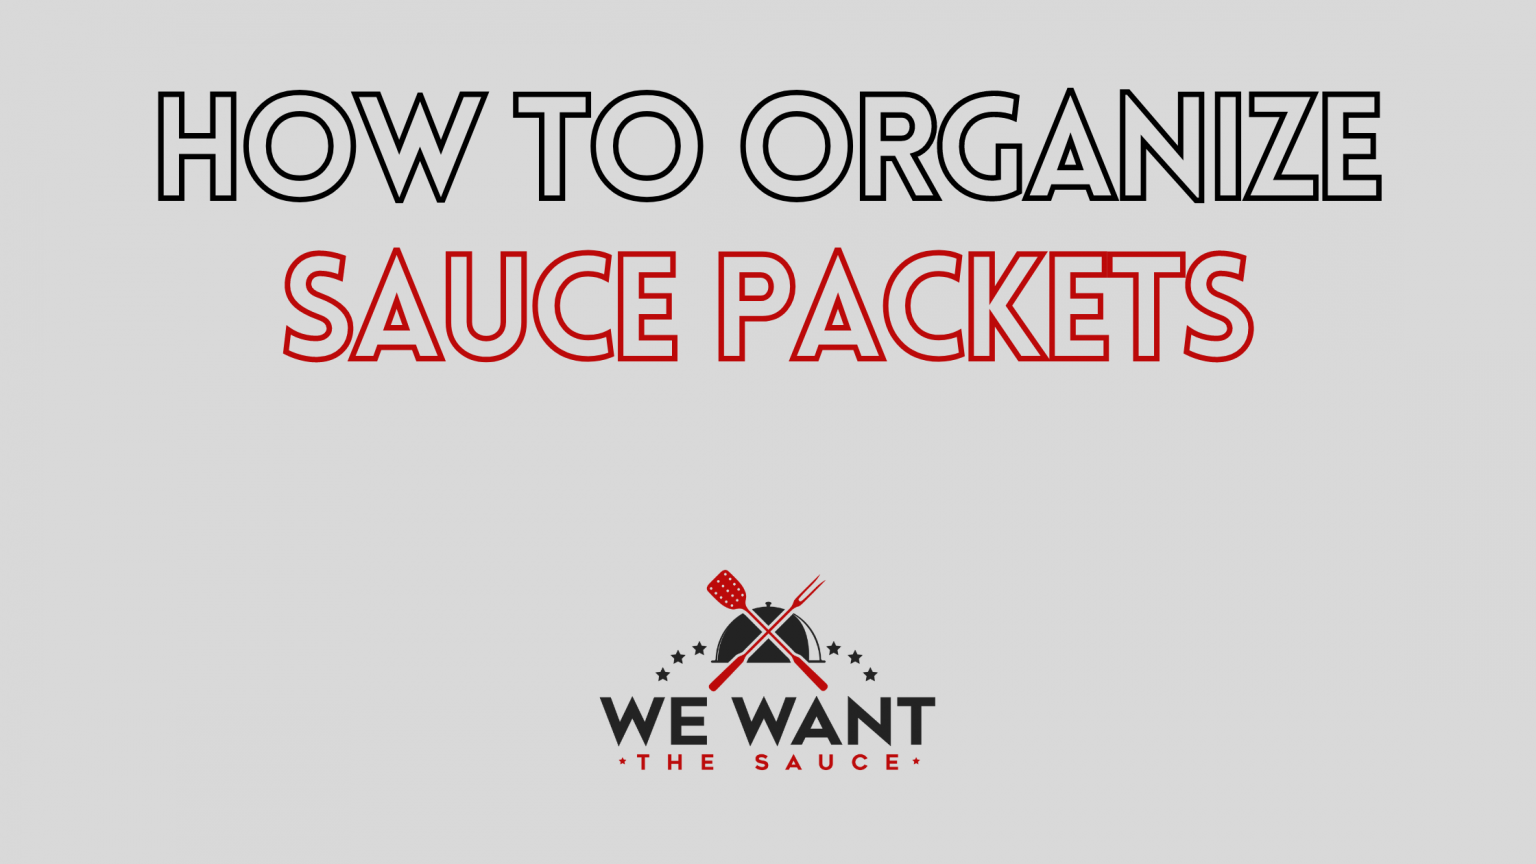 How To Organize Sauce Packets